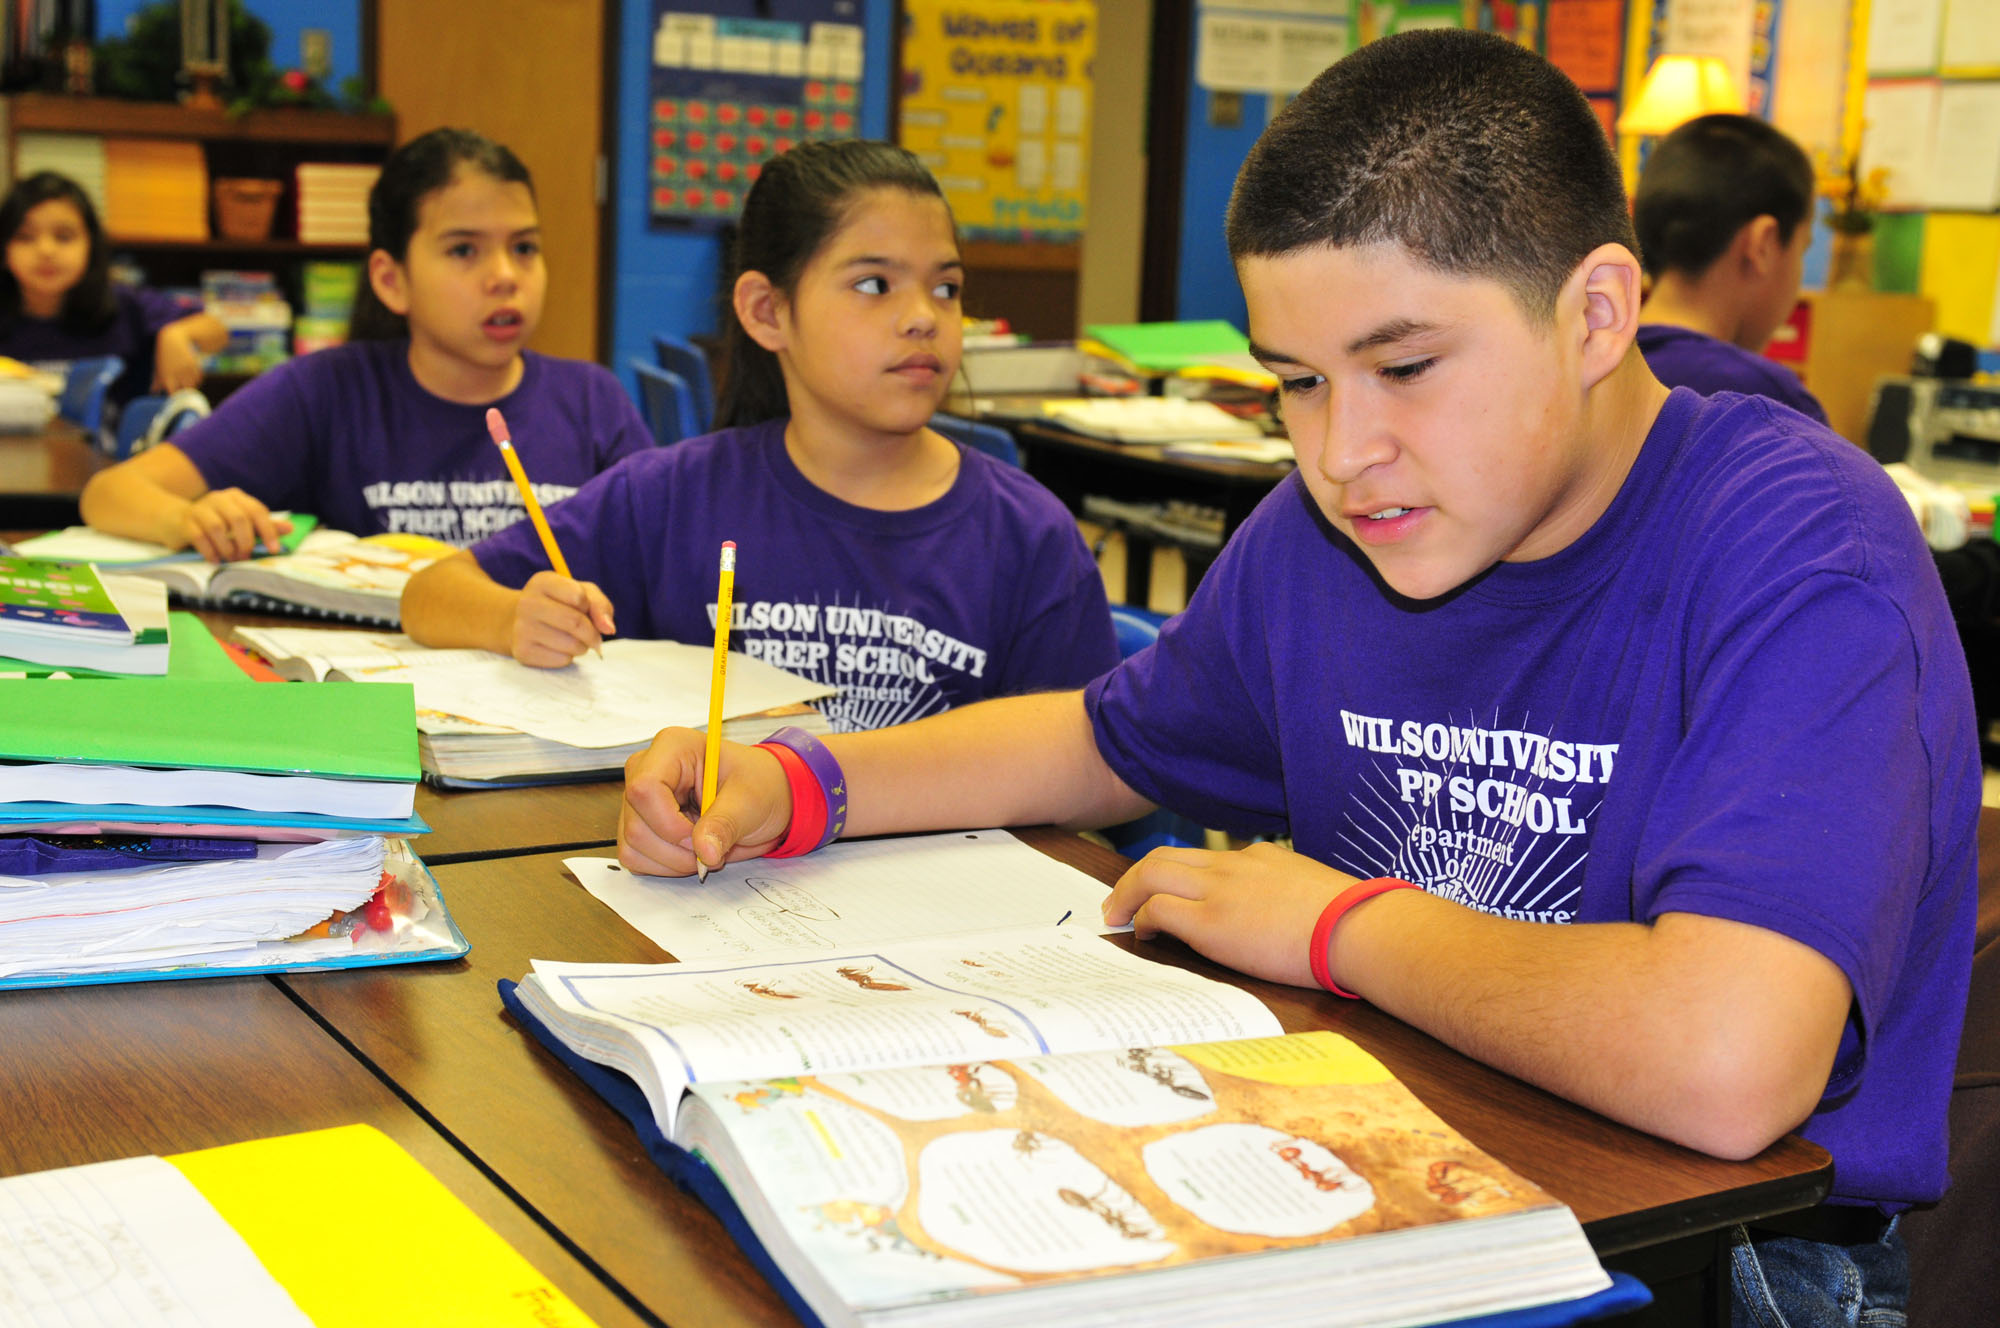 Wilson Elementary students get college and career ready in the classroom